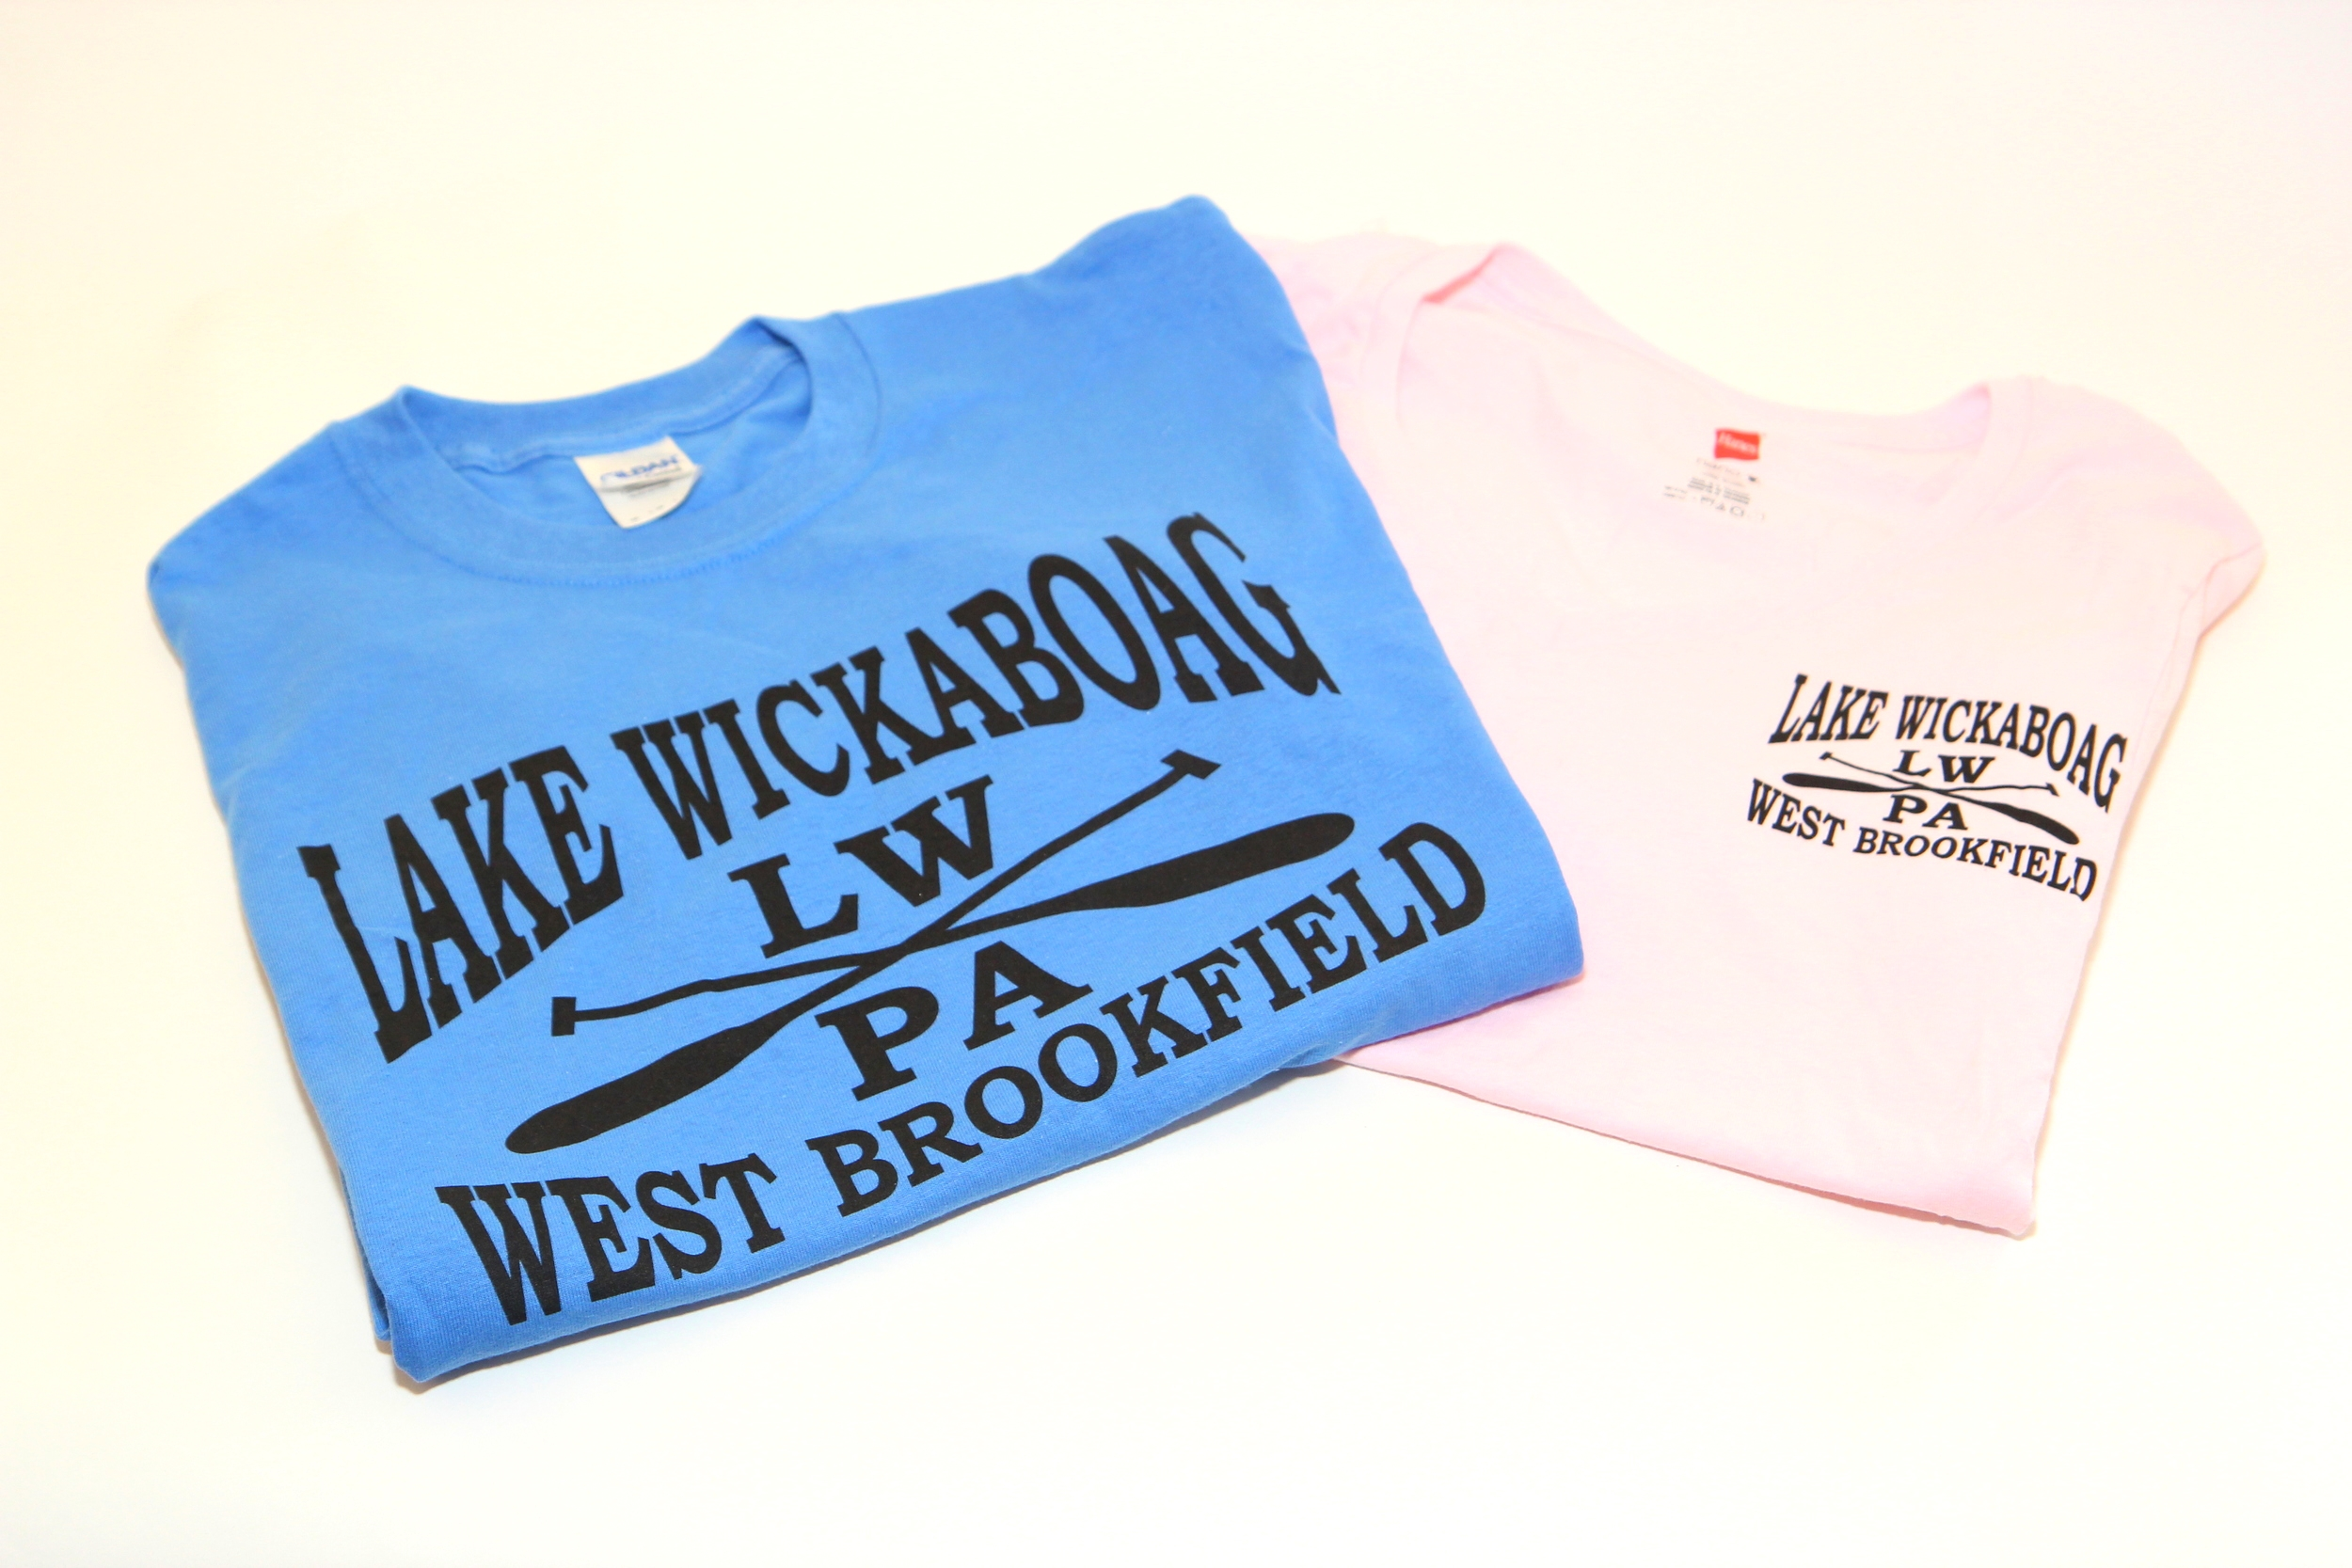 New Logo Tee shirts in soft pink and blue $15 - $20